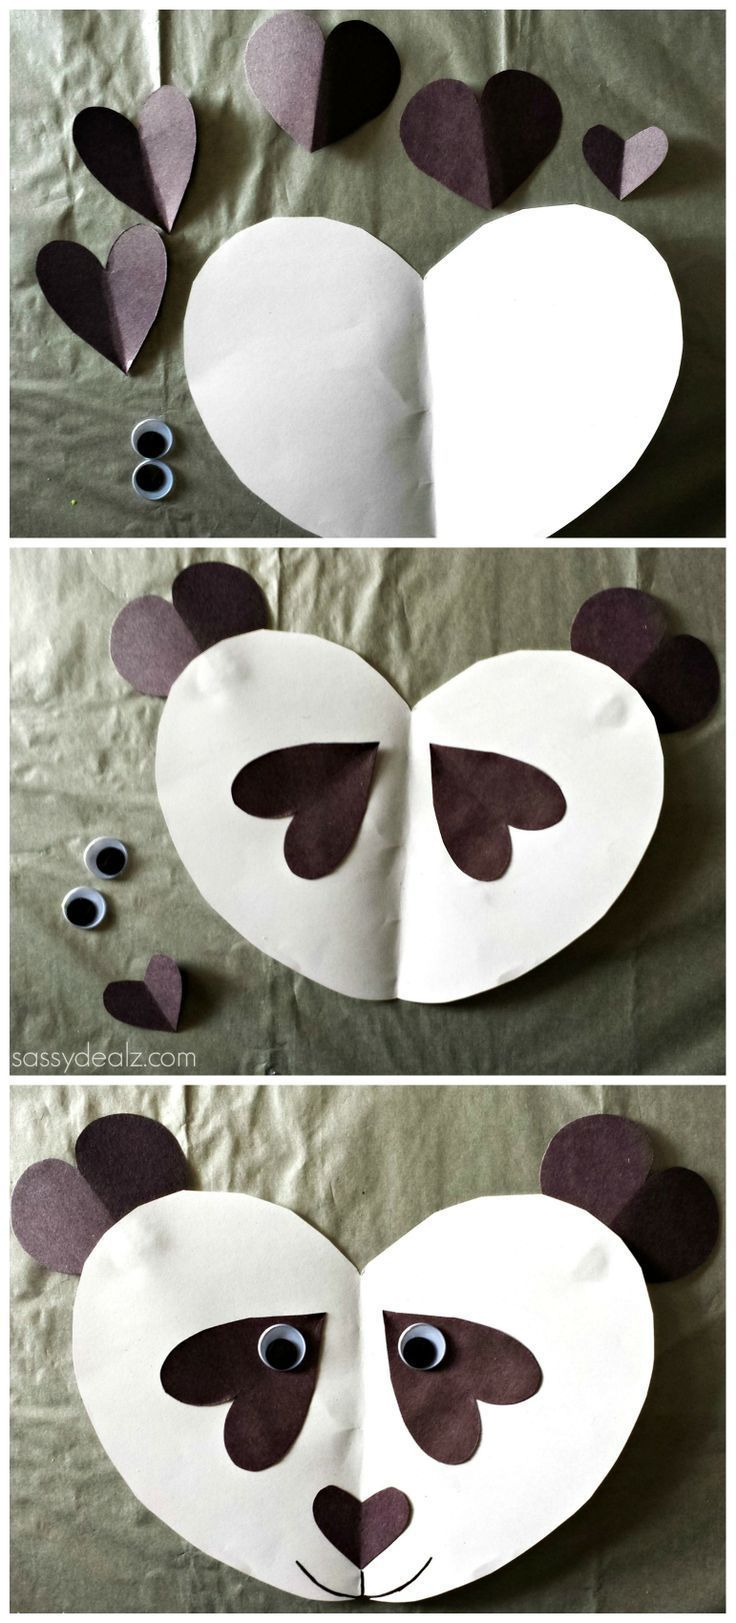 5/14/2017 #Panda #Craft For Kids - Made out of paper hearts!